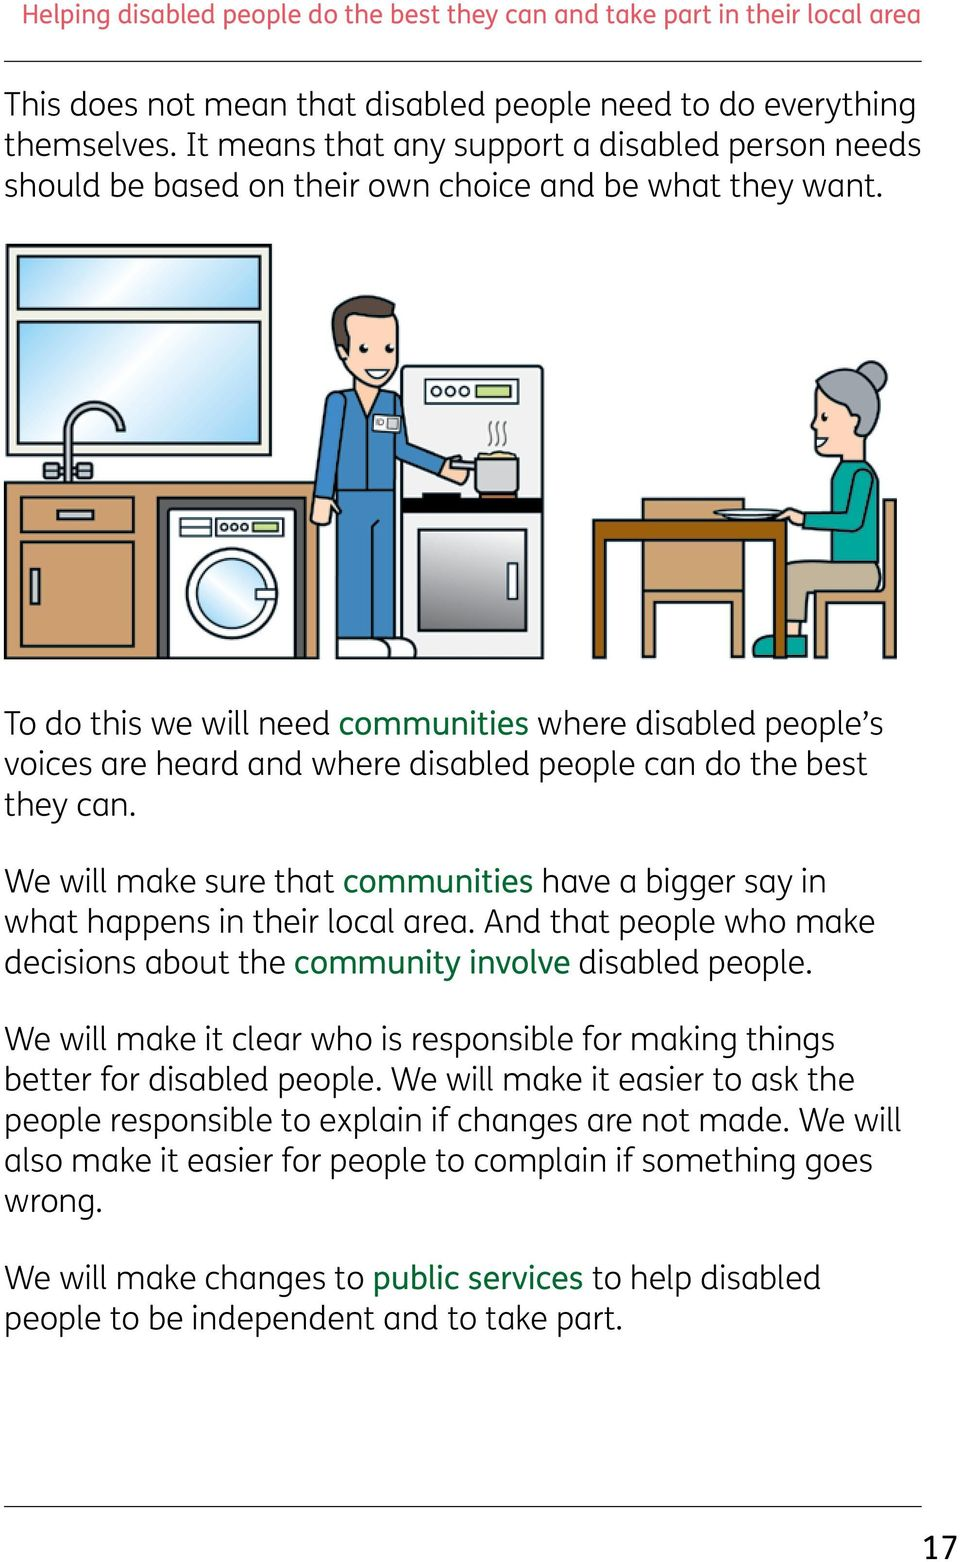 We will make sure that communities have a bigger say in what happens in their local area. And that people who make decisions about the community involve disabled people.